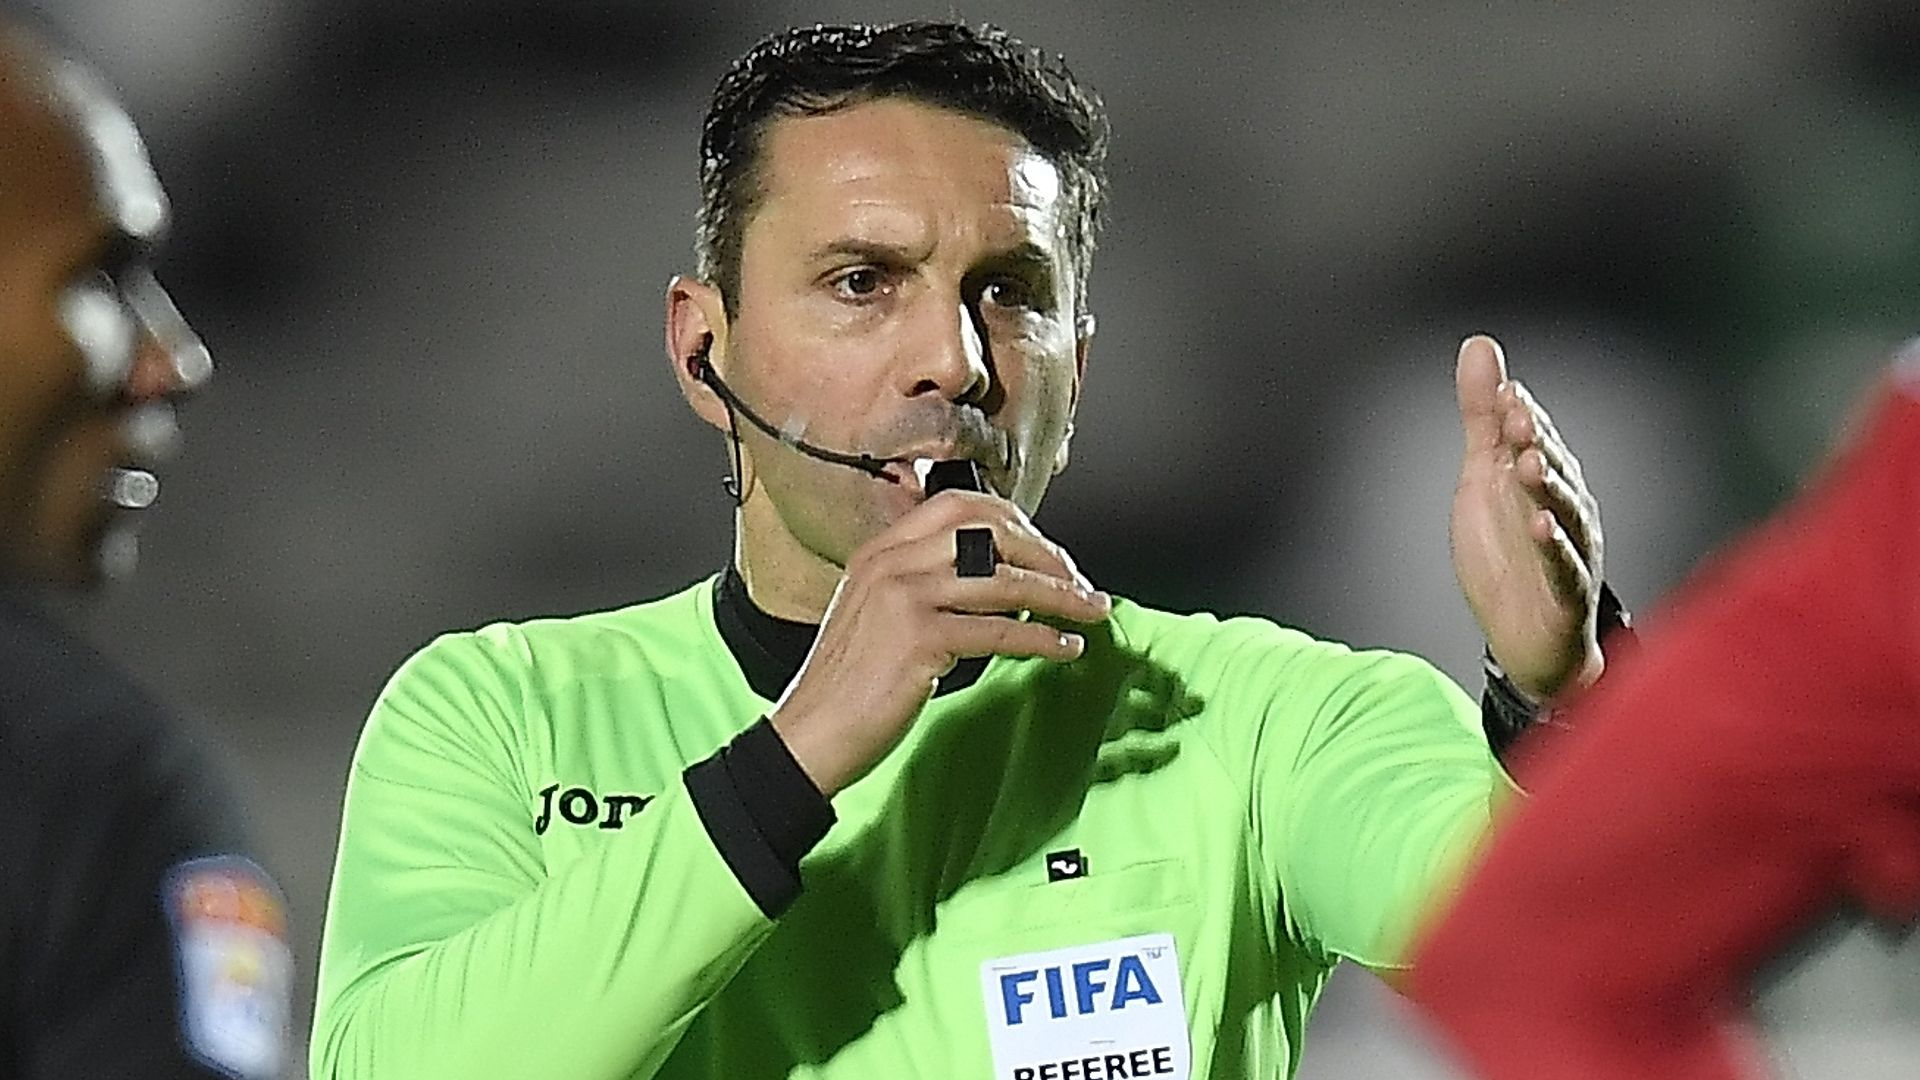 UEFA suspends Romanian official accused of racism